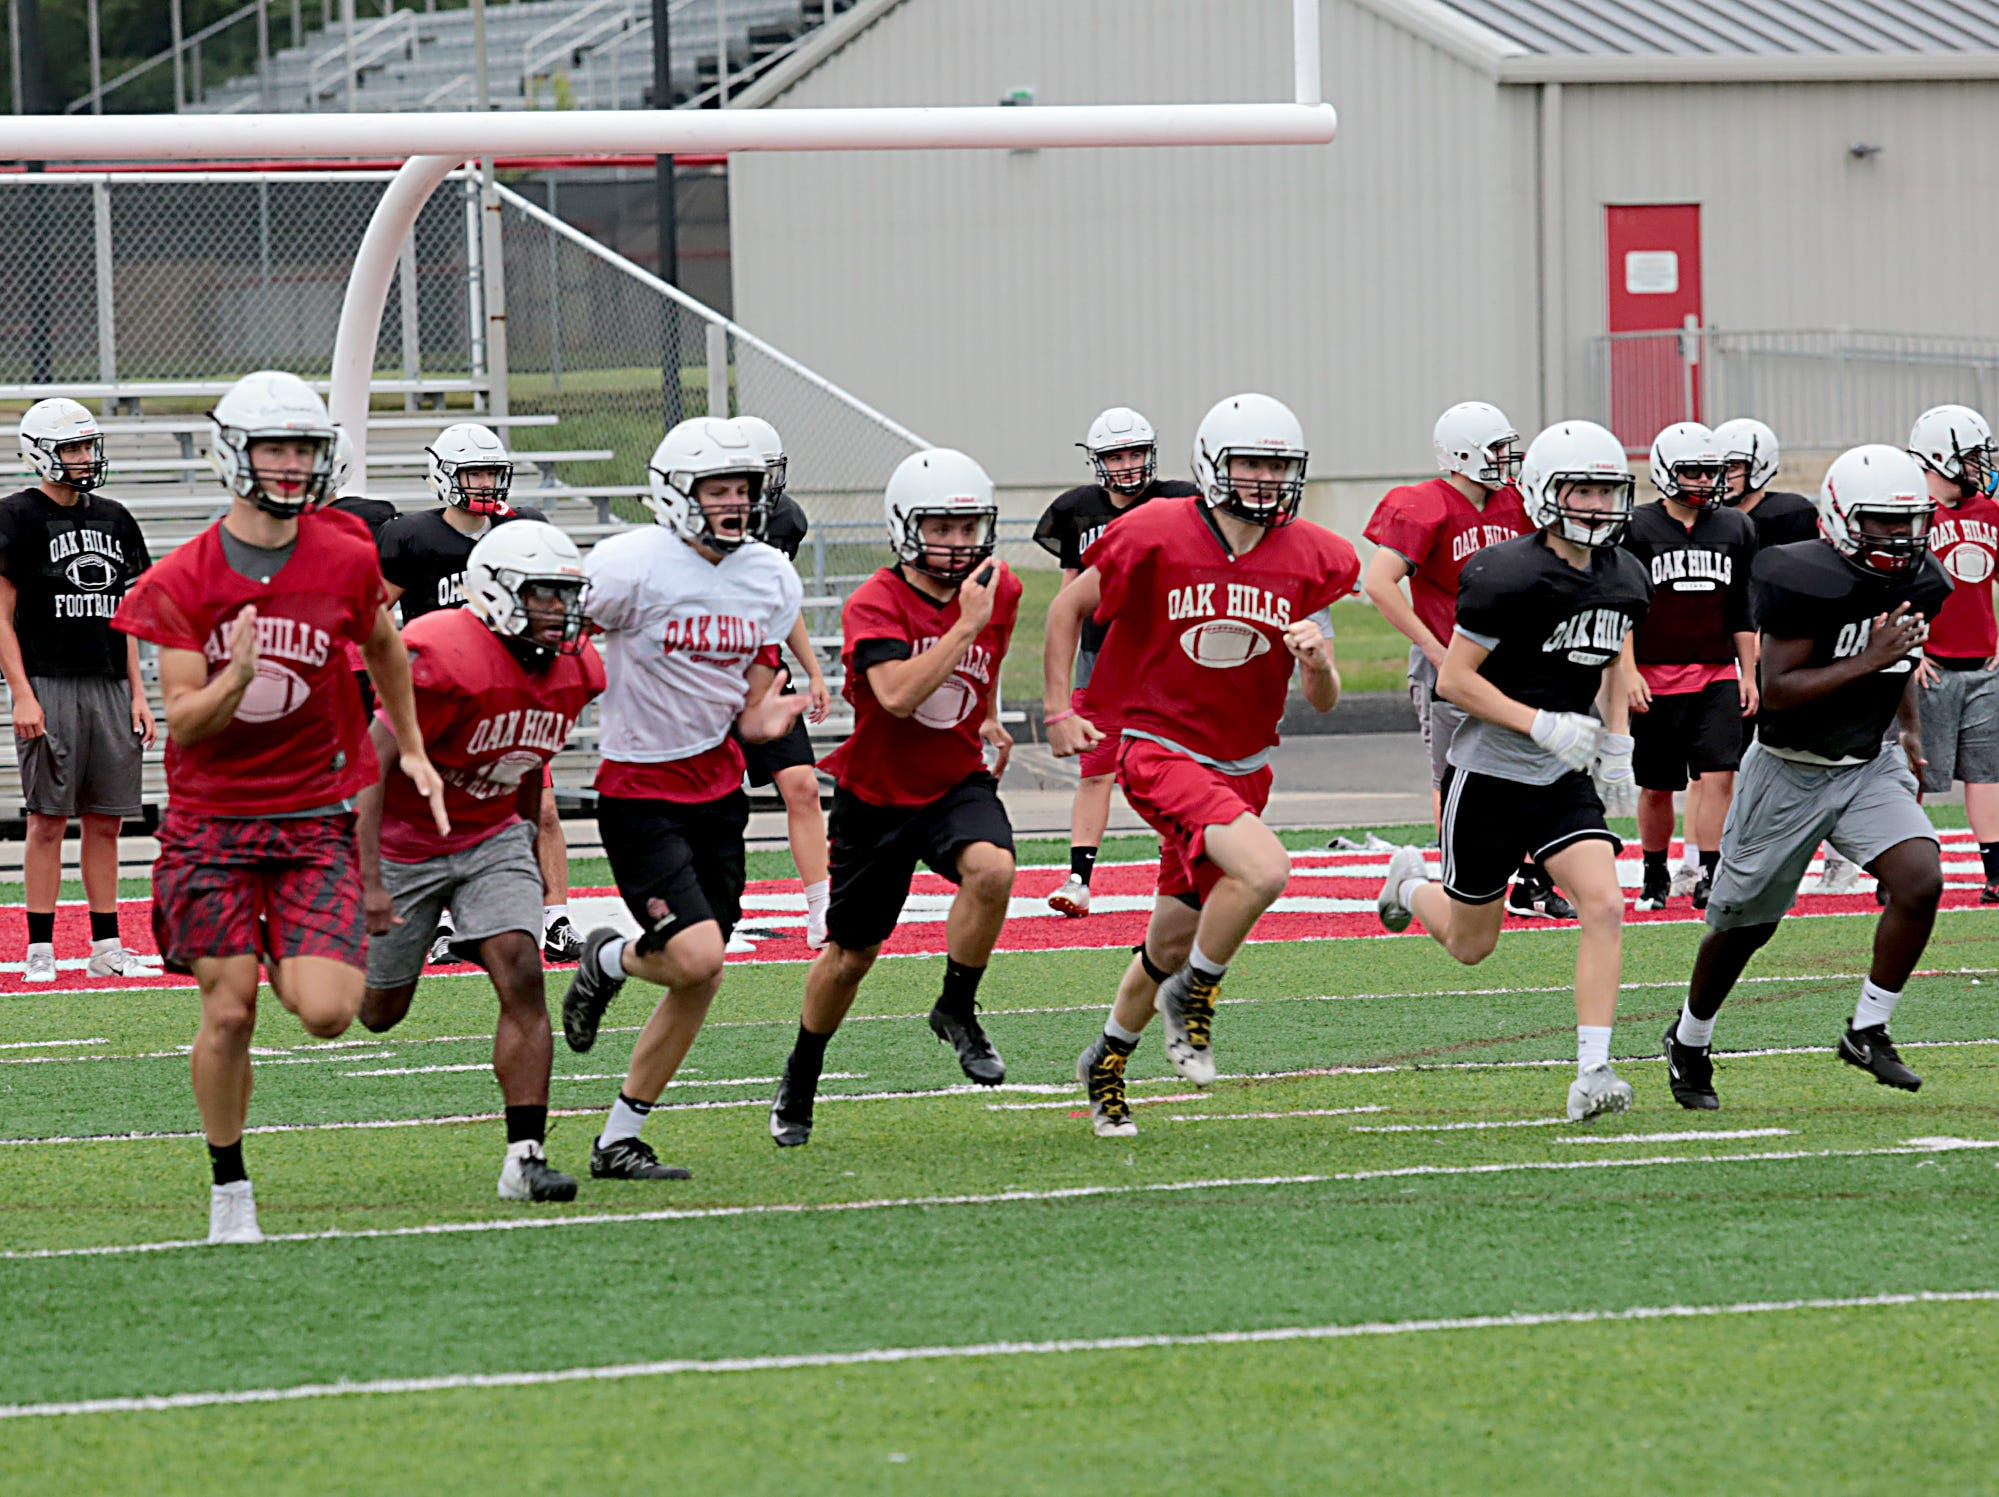 The Oak Hills football team practices Wednesday, Aug. 1, 2018.